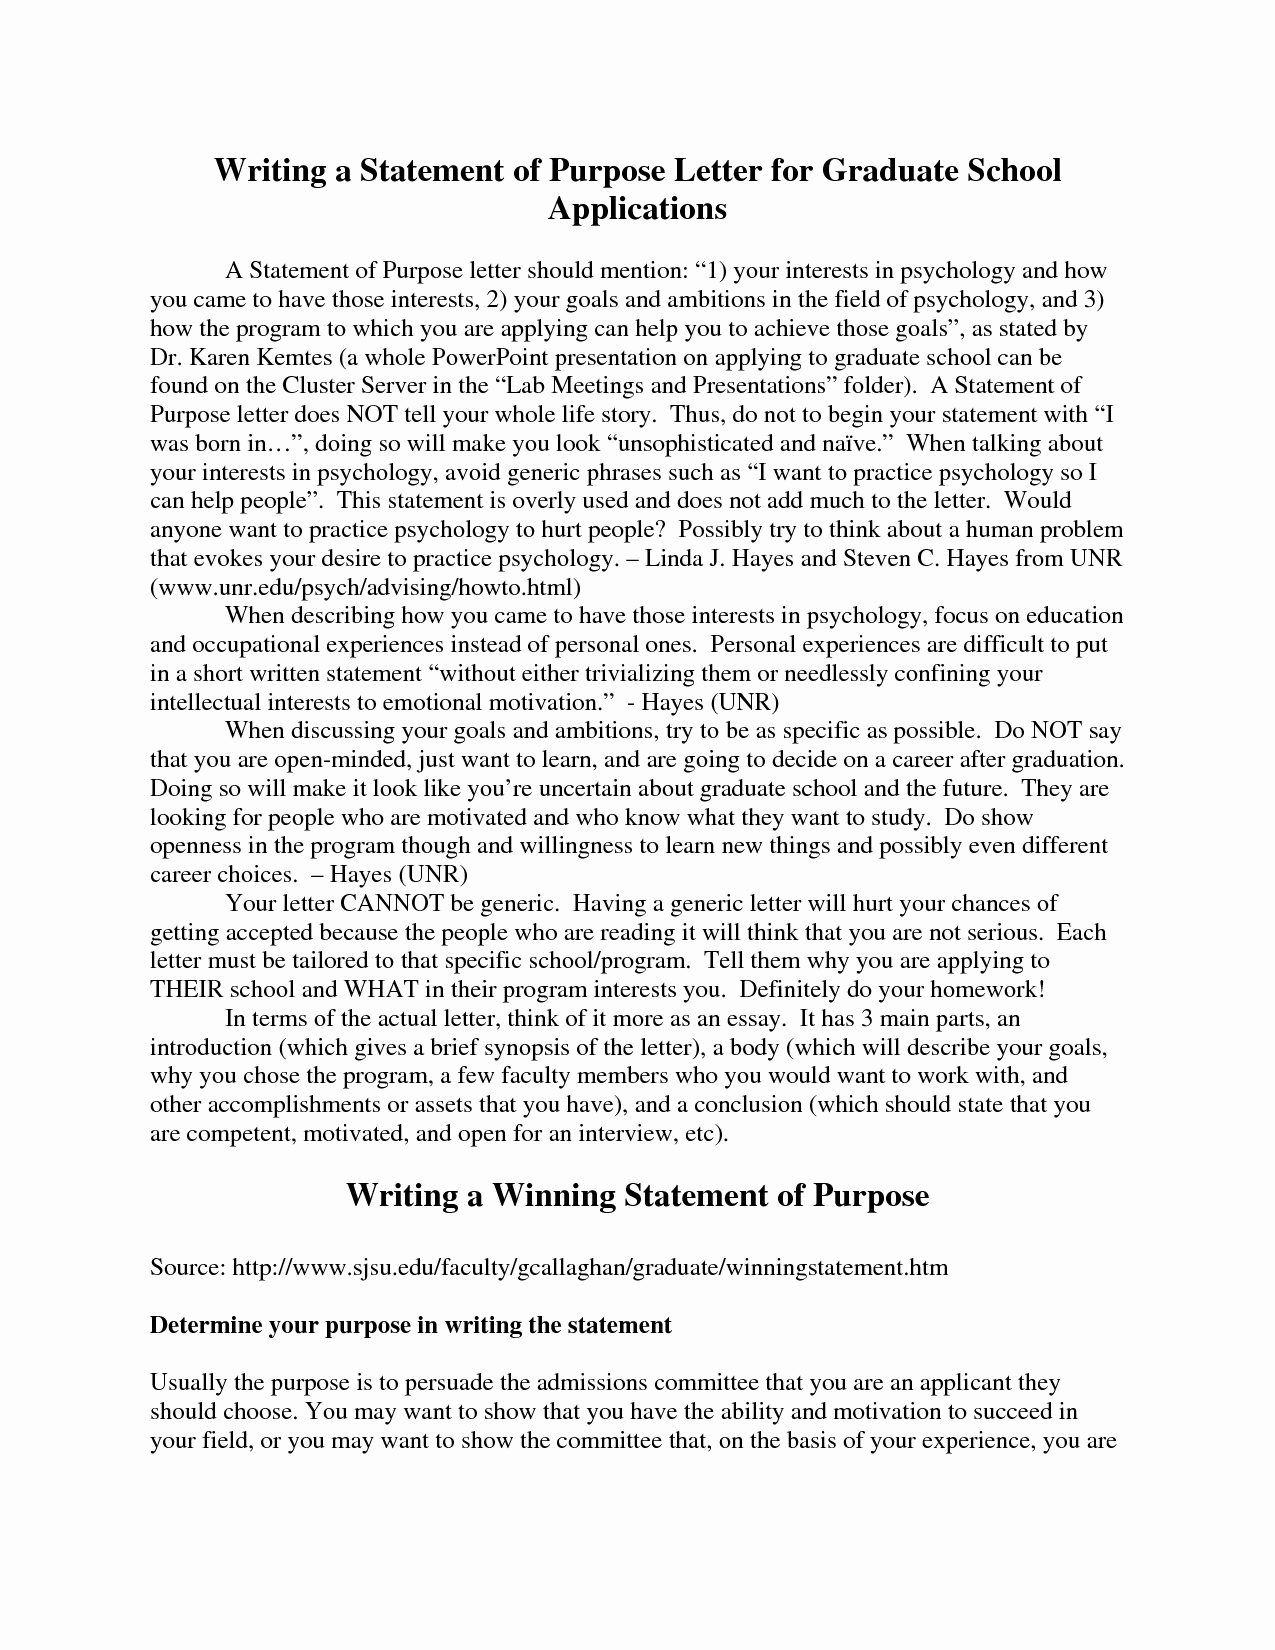 Mba Admission Essay Samples Pdf Inspirational Application Essay Grad School Sample